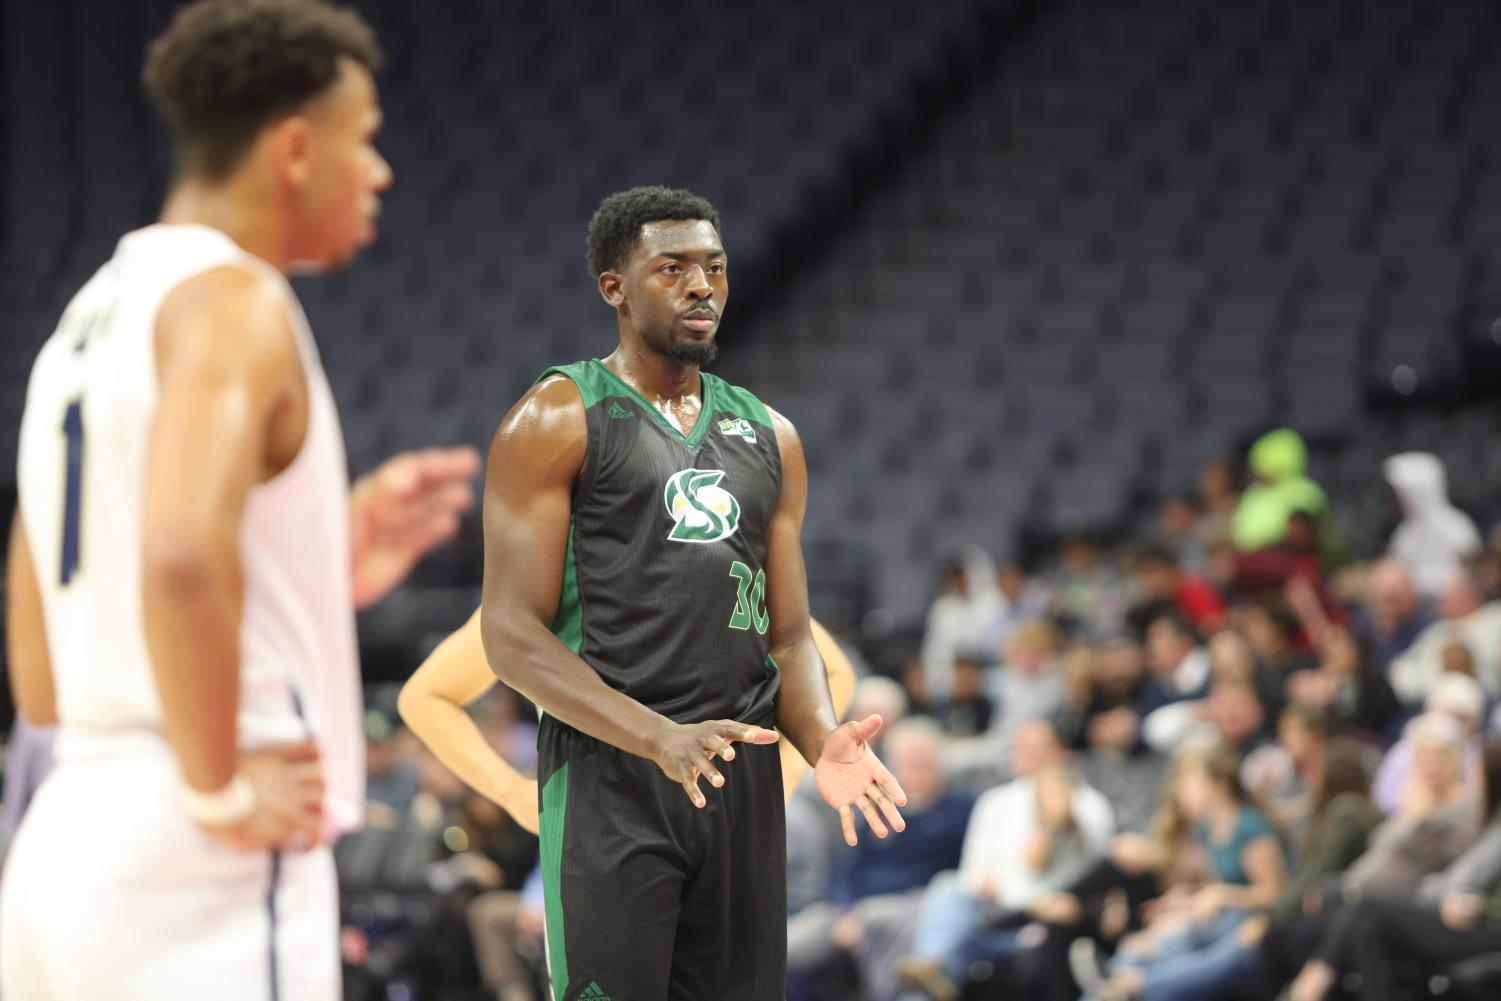 Sac State senior center Joshua Patton waits to shoot a free throw against UC Davis on Wednesday, Nov. 20 2019 at Golden 1 Center.  Patton became the second center in Sac State history to score 1000 career points during the team's Saturday night victory over Idaho State 68-49.